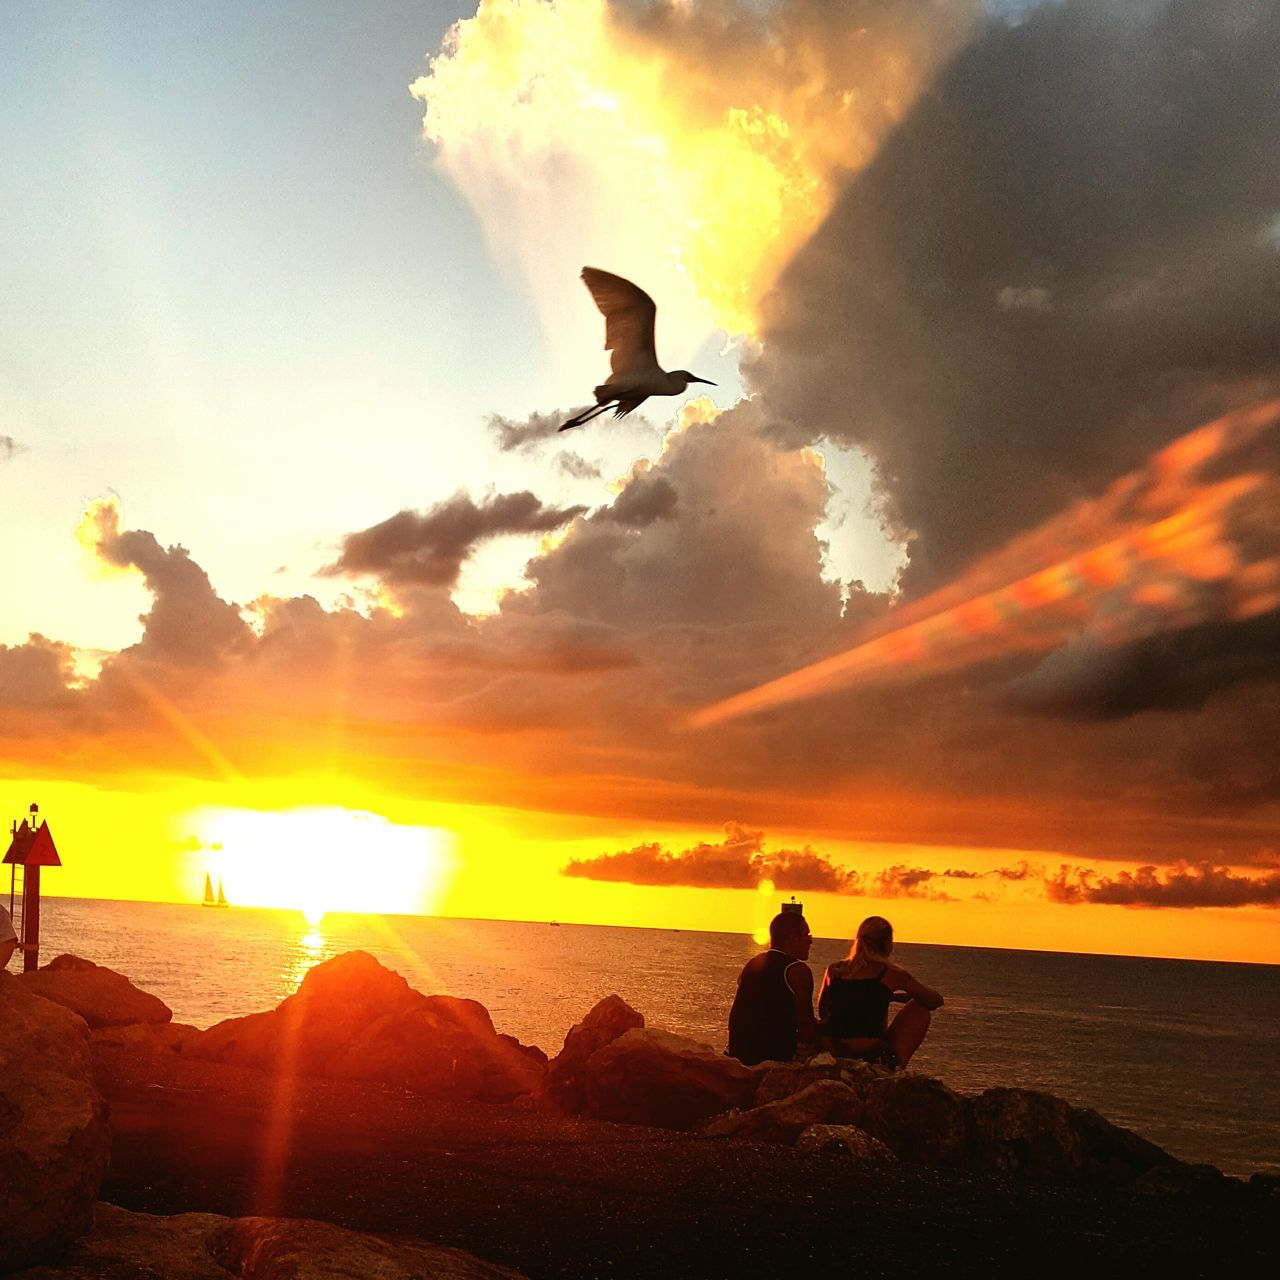 sunset, silhouette, sky, sea, orange color, nature, cloud - sky, beauty in nature, flying, beach, water, sun, scenics, outdoors, bird, horizon over water, real people, leisure activity, togetherness, tranquil scene, men, sunlight, tranquility, sitting, animals in the wild, friendship, day, people